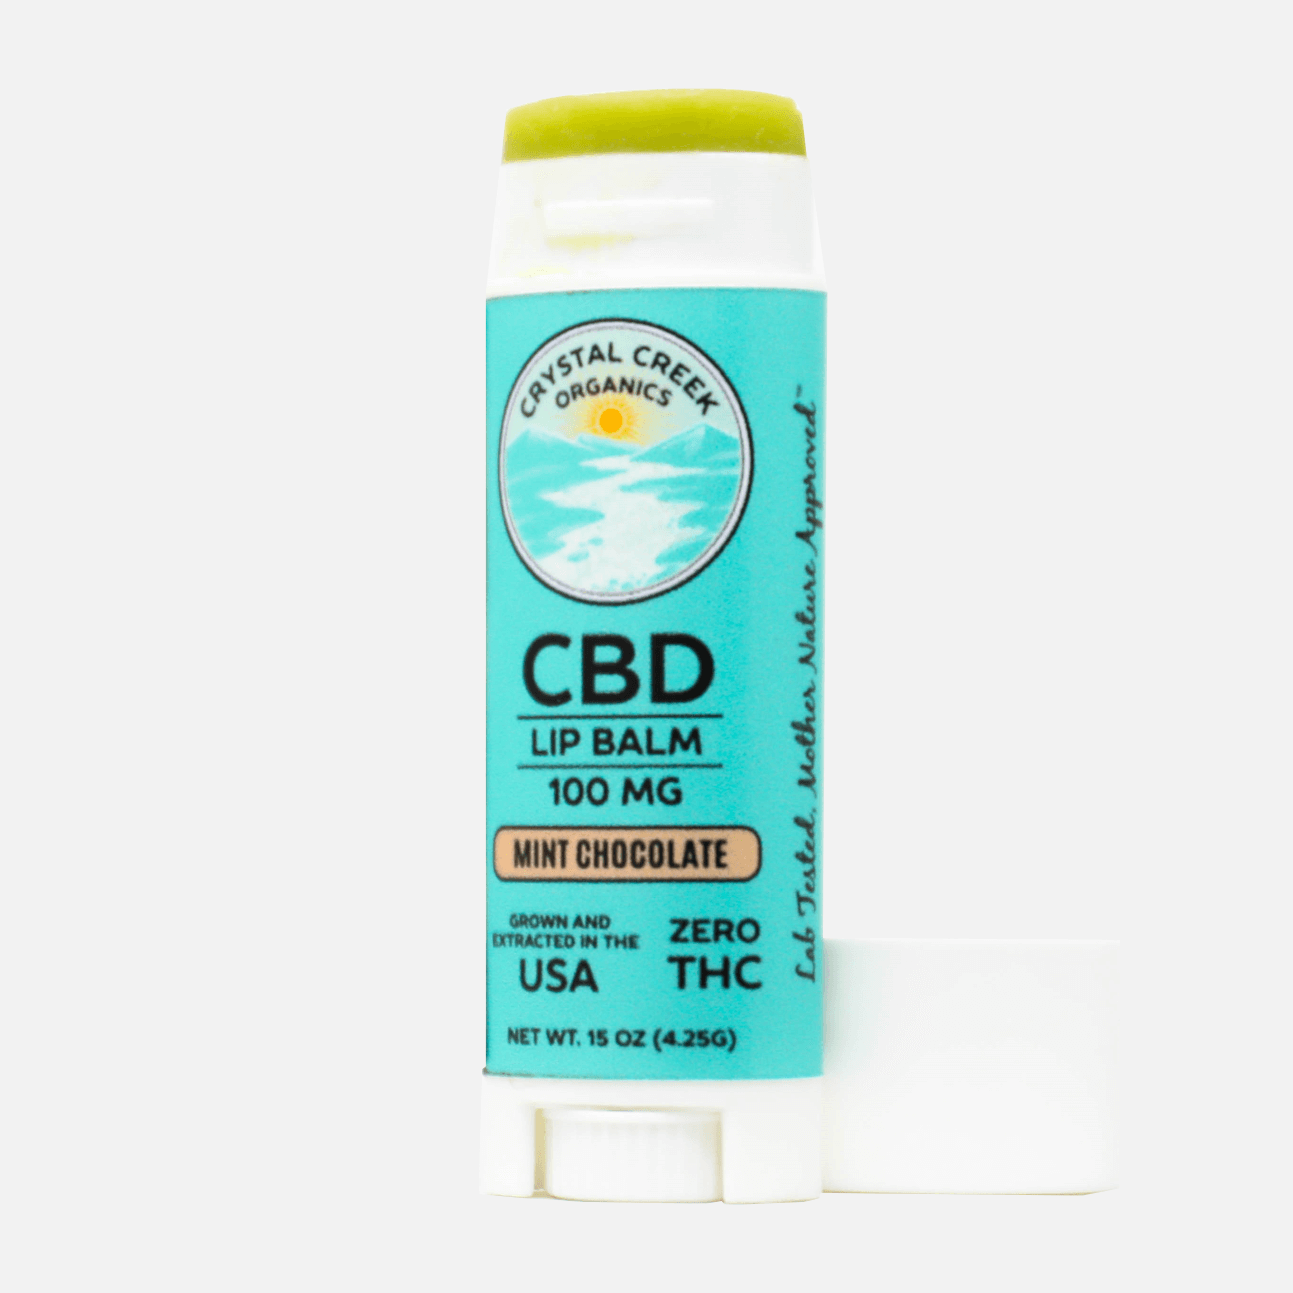 Chocolate Mint CBD Lip Balm